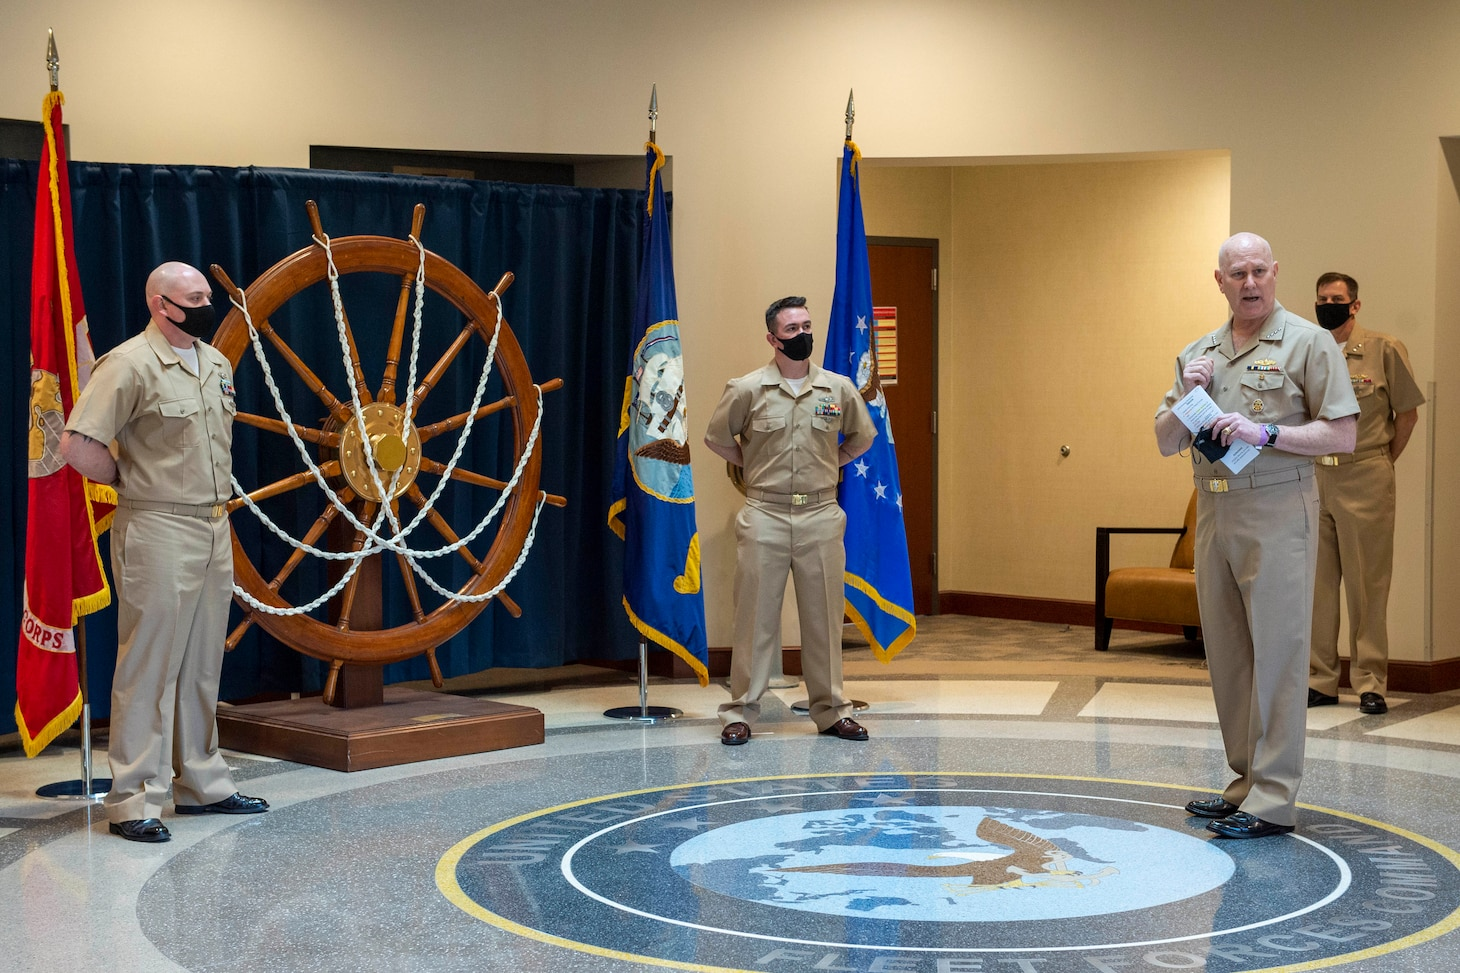 Adm. Christopher W. Grady, commander, U.S. Fleet Forces Command presides over the pinning of Chief Intelligence Specialist Joshua Waldrop and Chief Aviation Aerographer's Mate Travis Strait during a chief petty officer (CPO) pinning ceremony at the USFFC headquarters in Norfolk, Virginia.